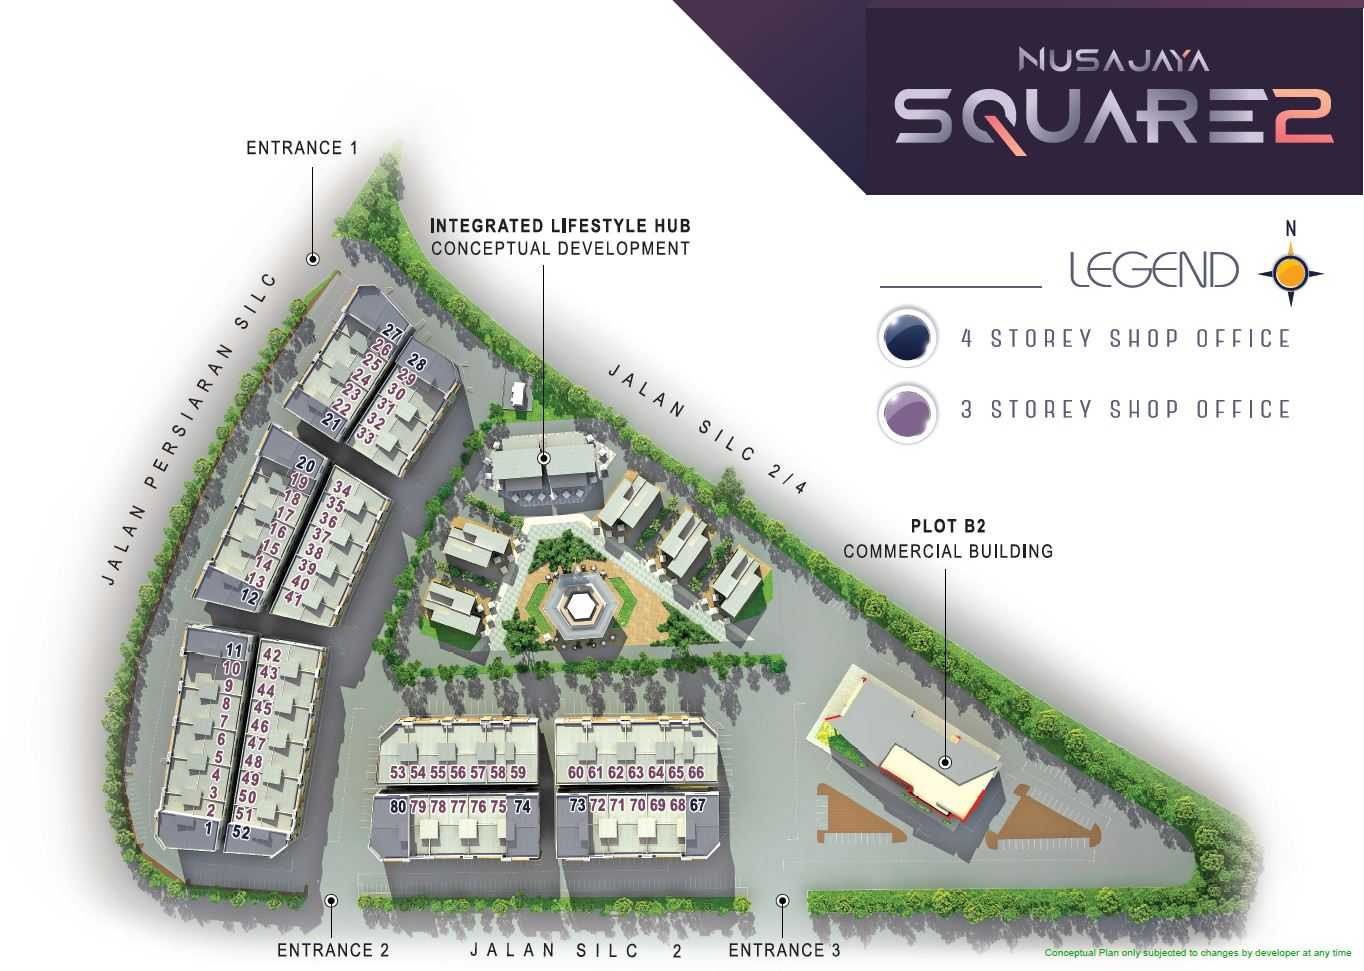 Nusajaya-Square-2-Site-Plan